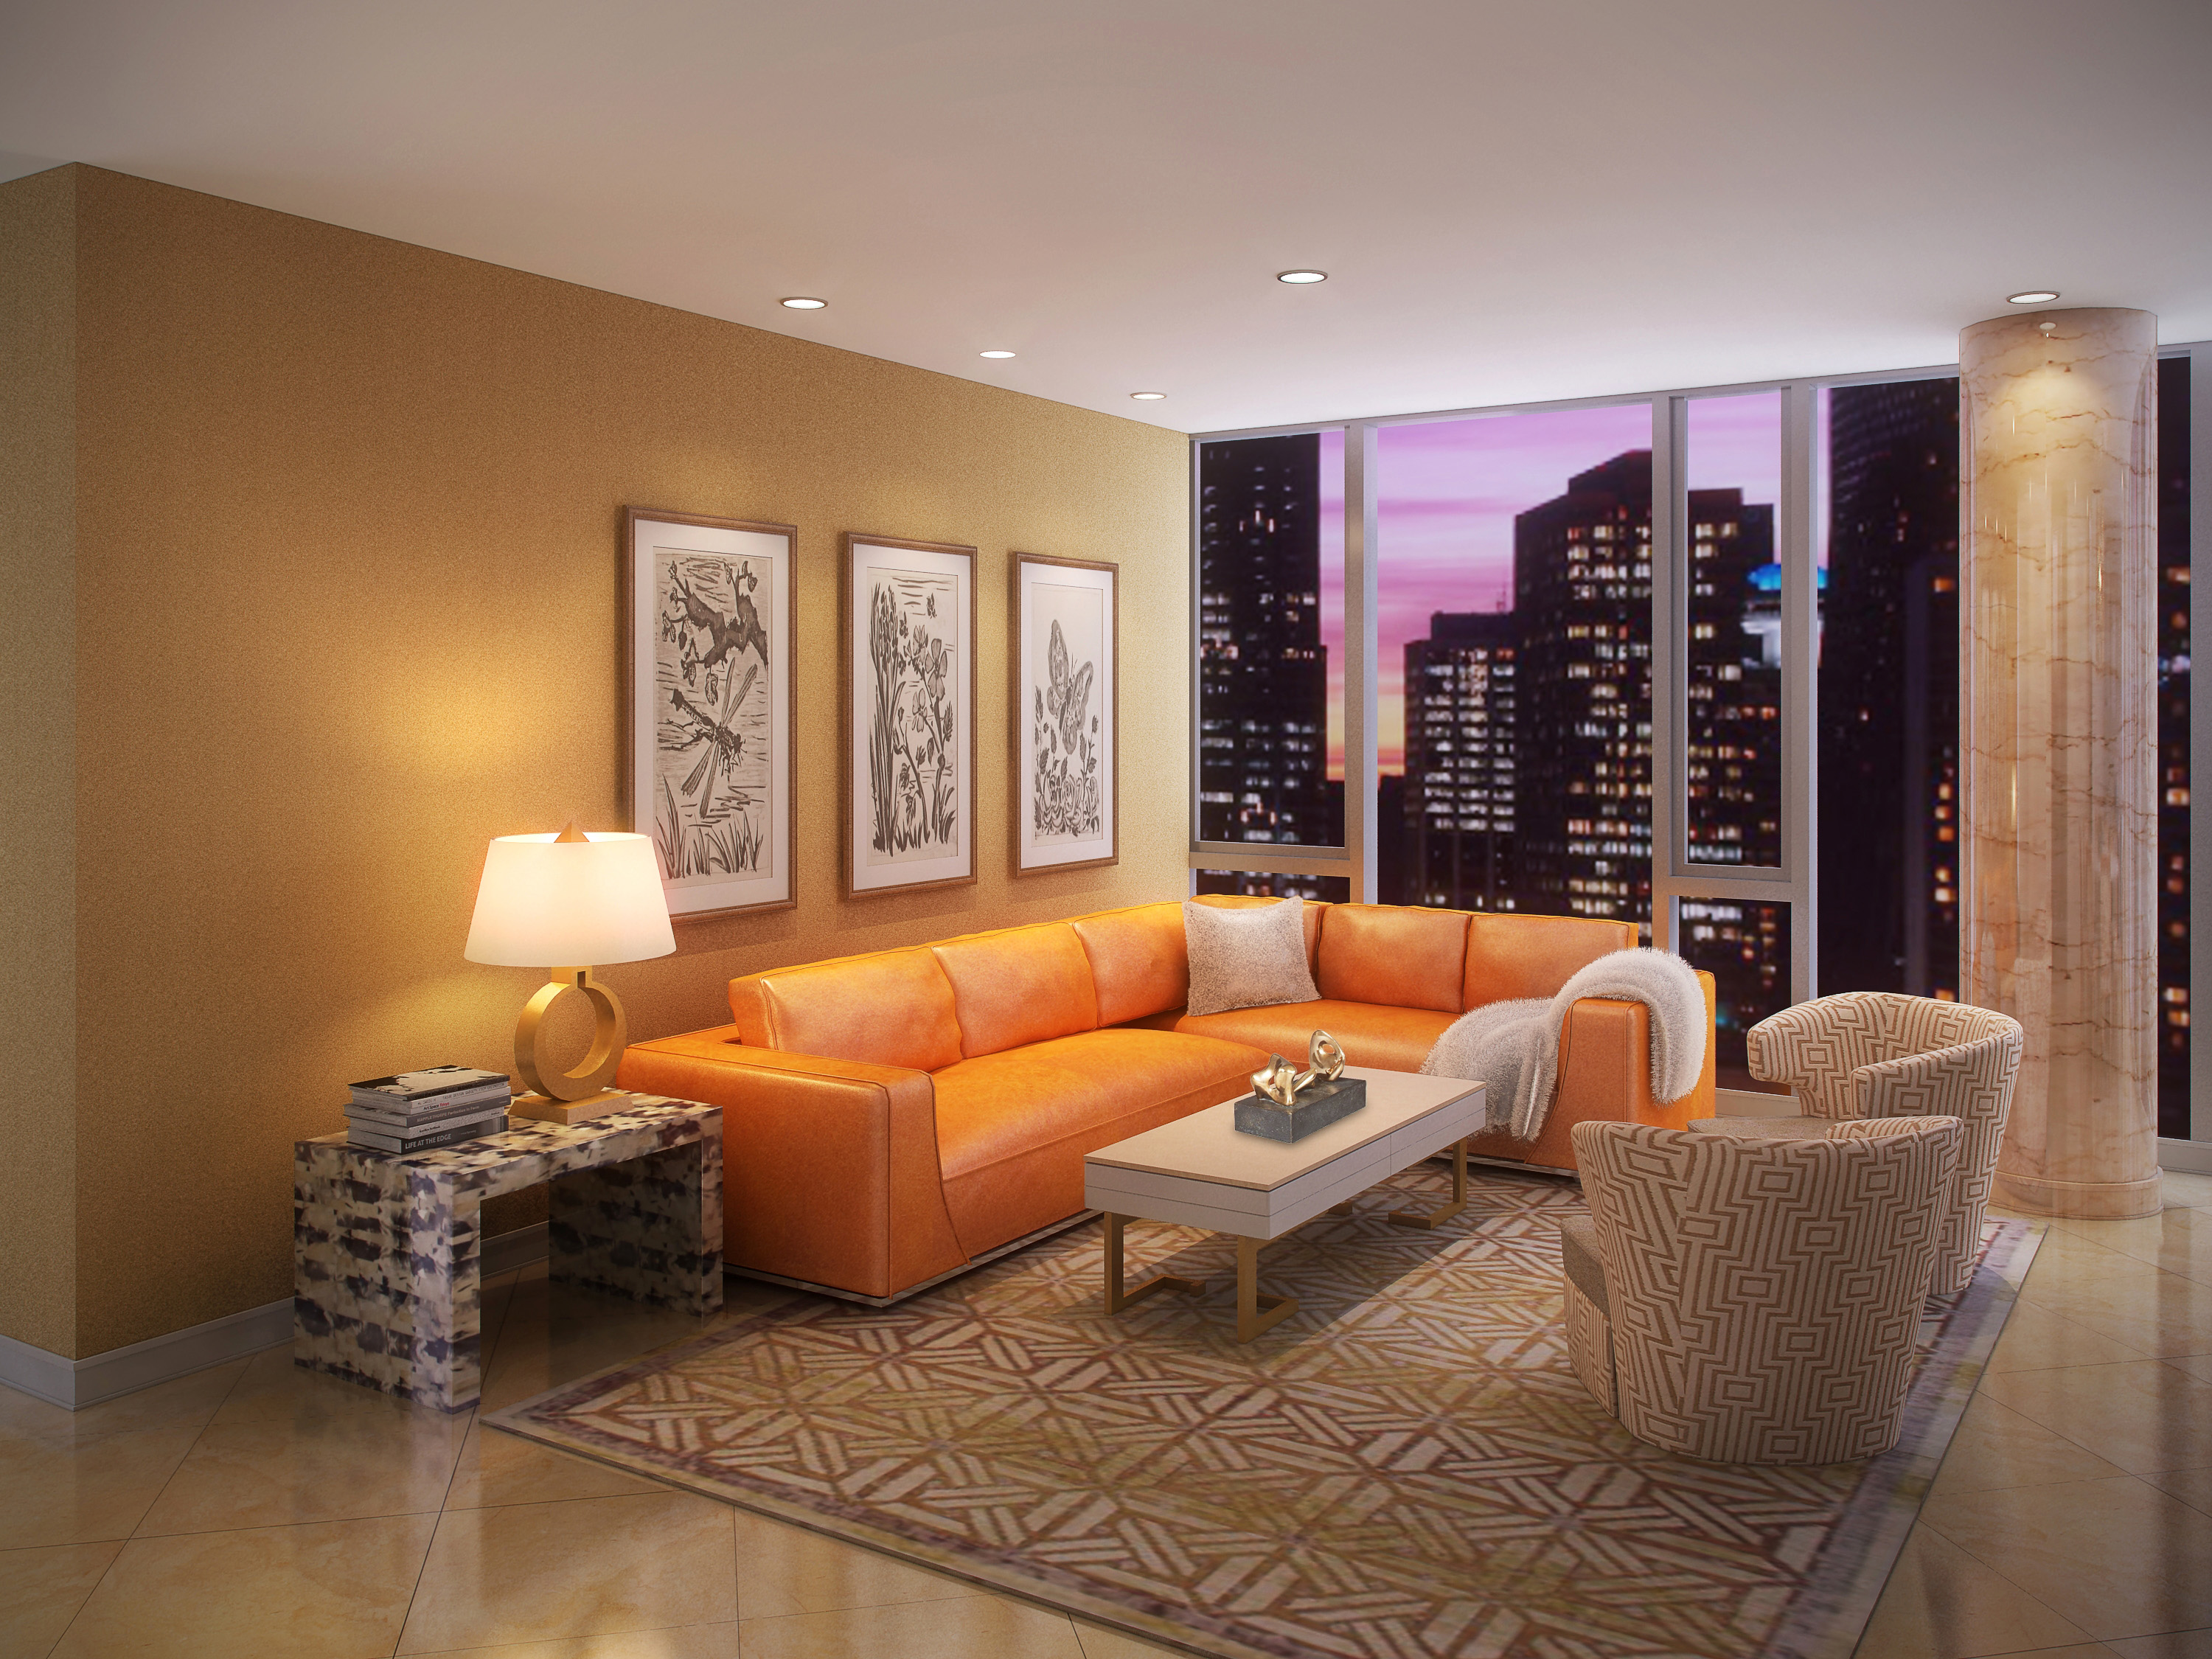 Chicago Luxury - 4 EAST ELM - LAYOUT 3 LIVING ROOM - HI-RES